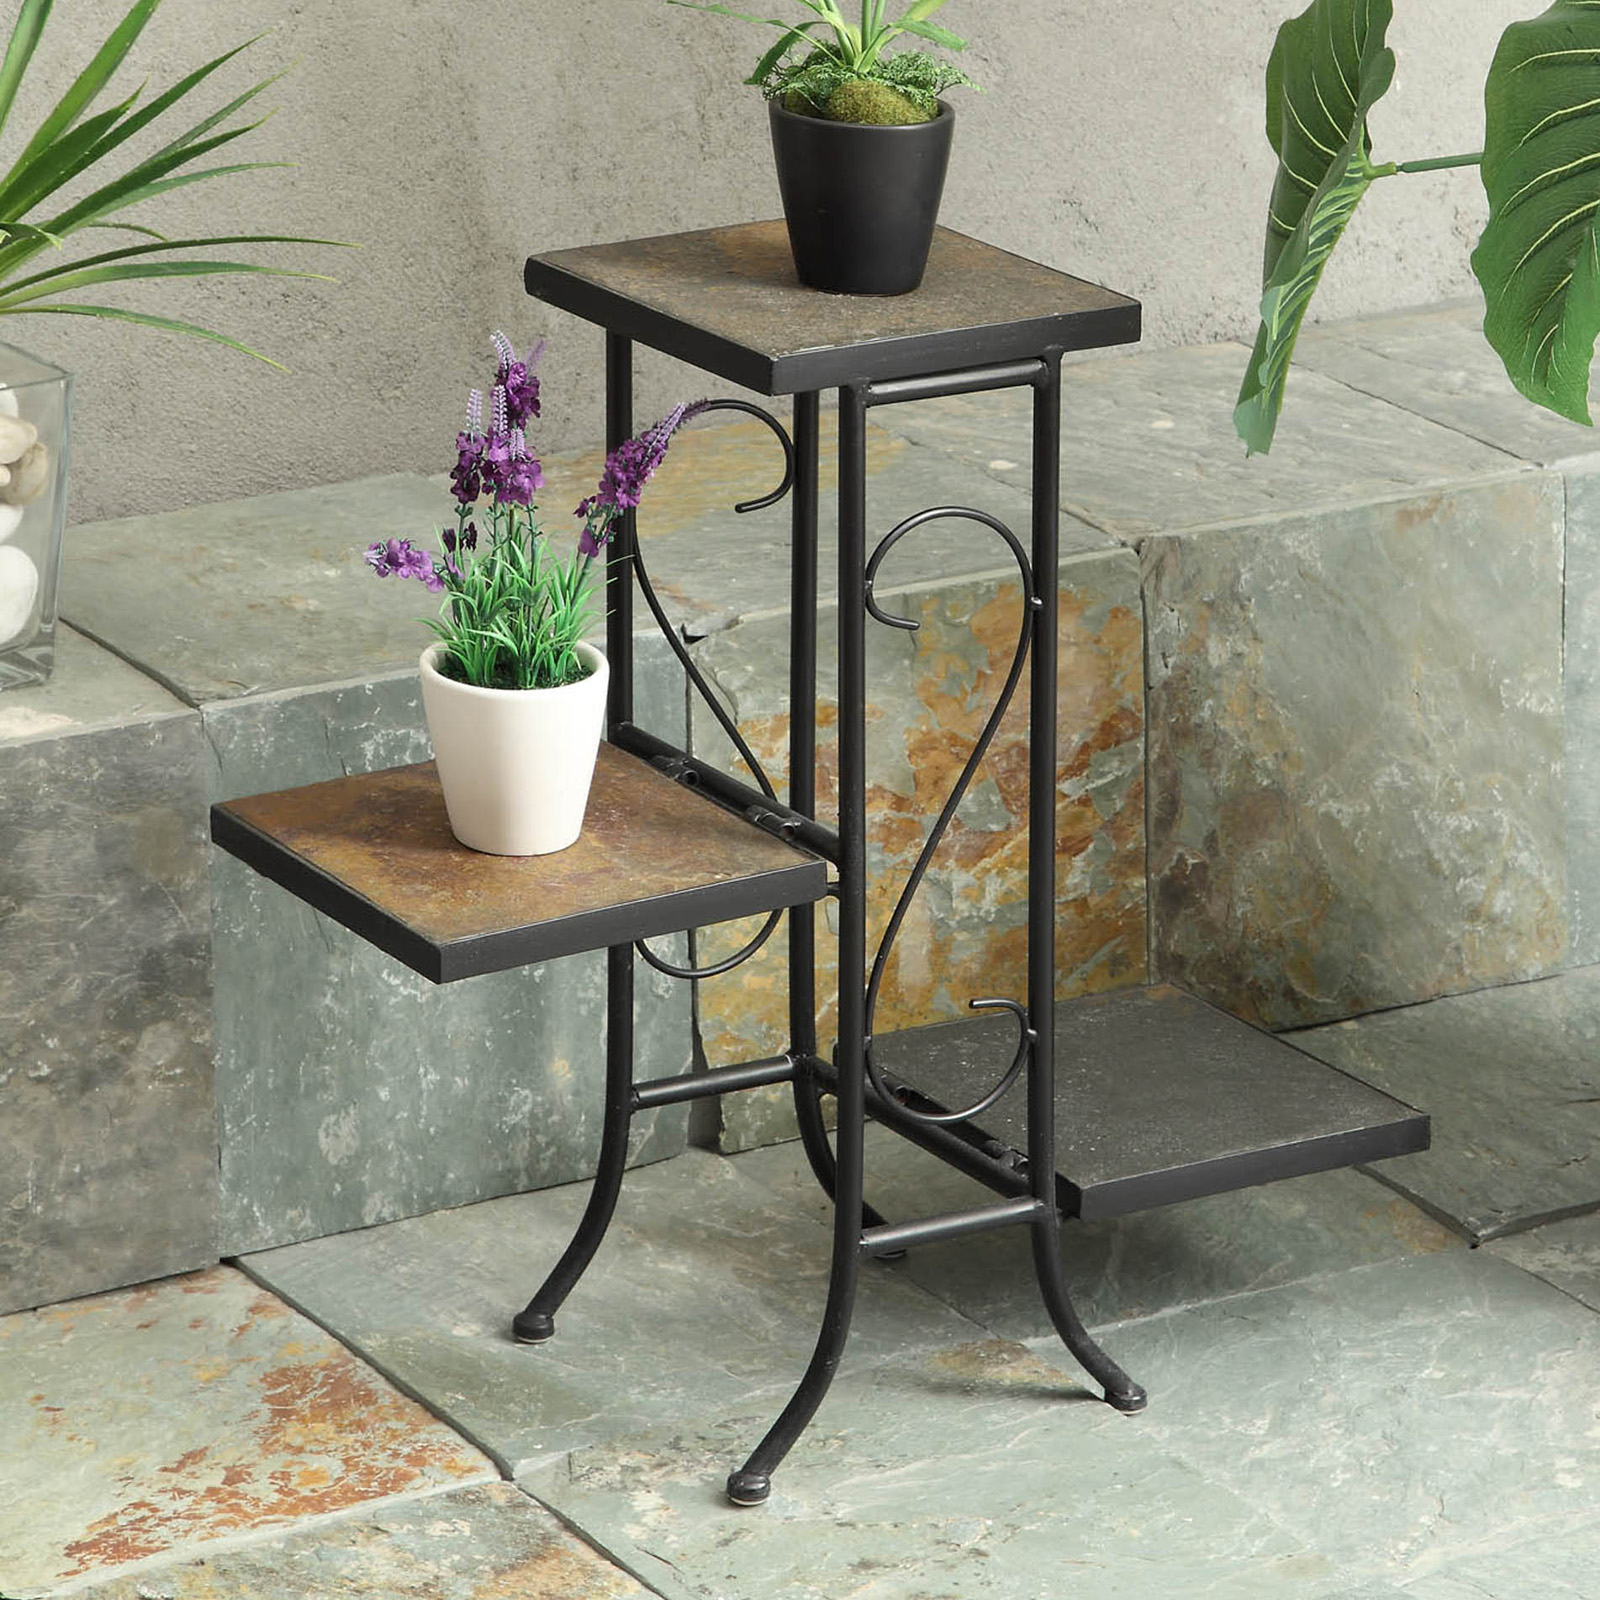 4d Concepts 3 Tier Slate Plant Stand Tiered Plant Stands